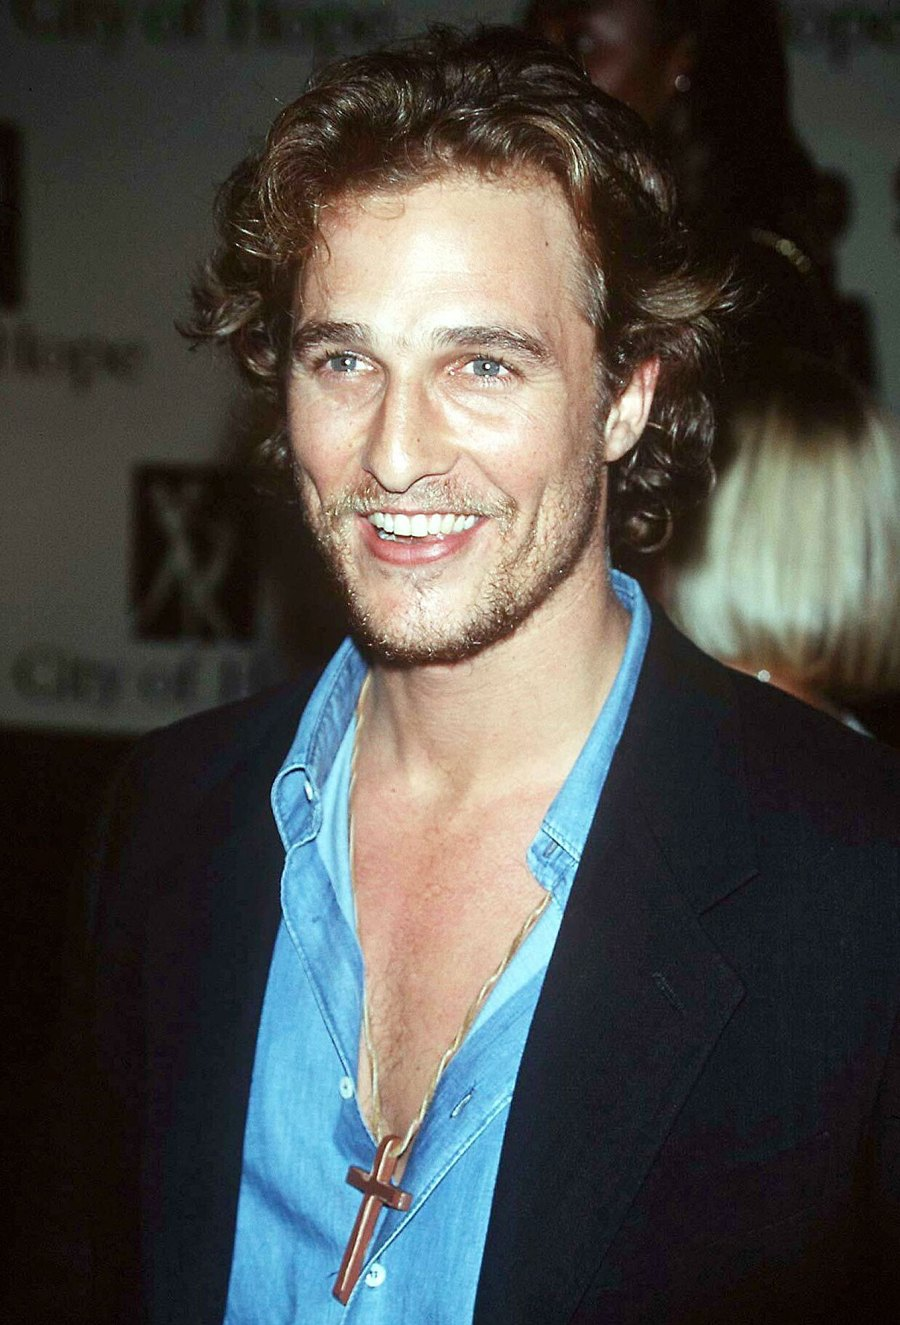 Matthew McConaughey Wearing A Cross Necklace in 1996 Things We Learned About Matthew McConaughey in His New Book Greenlights